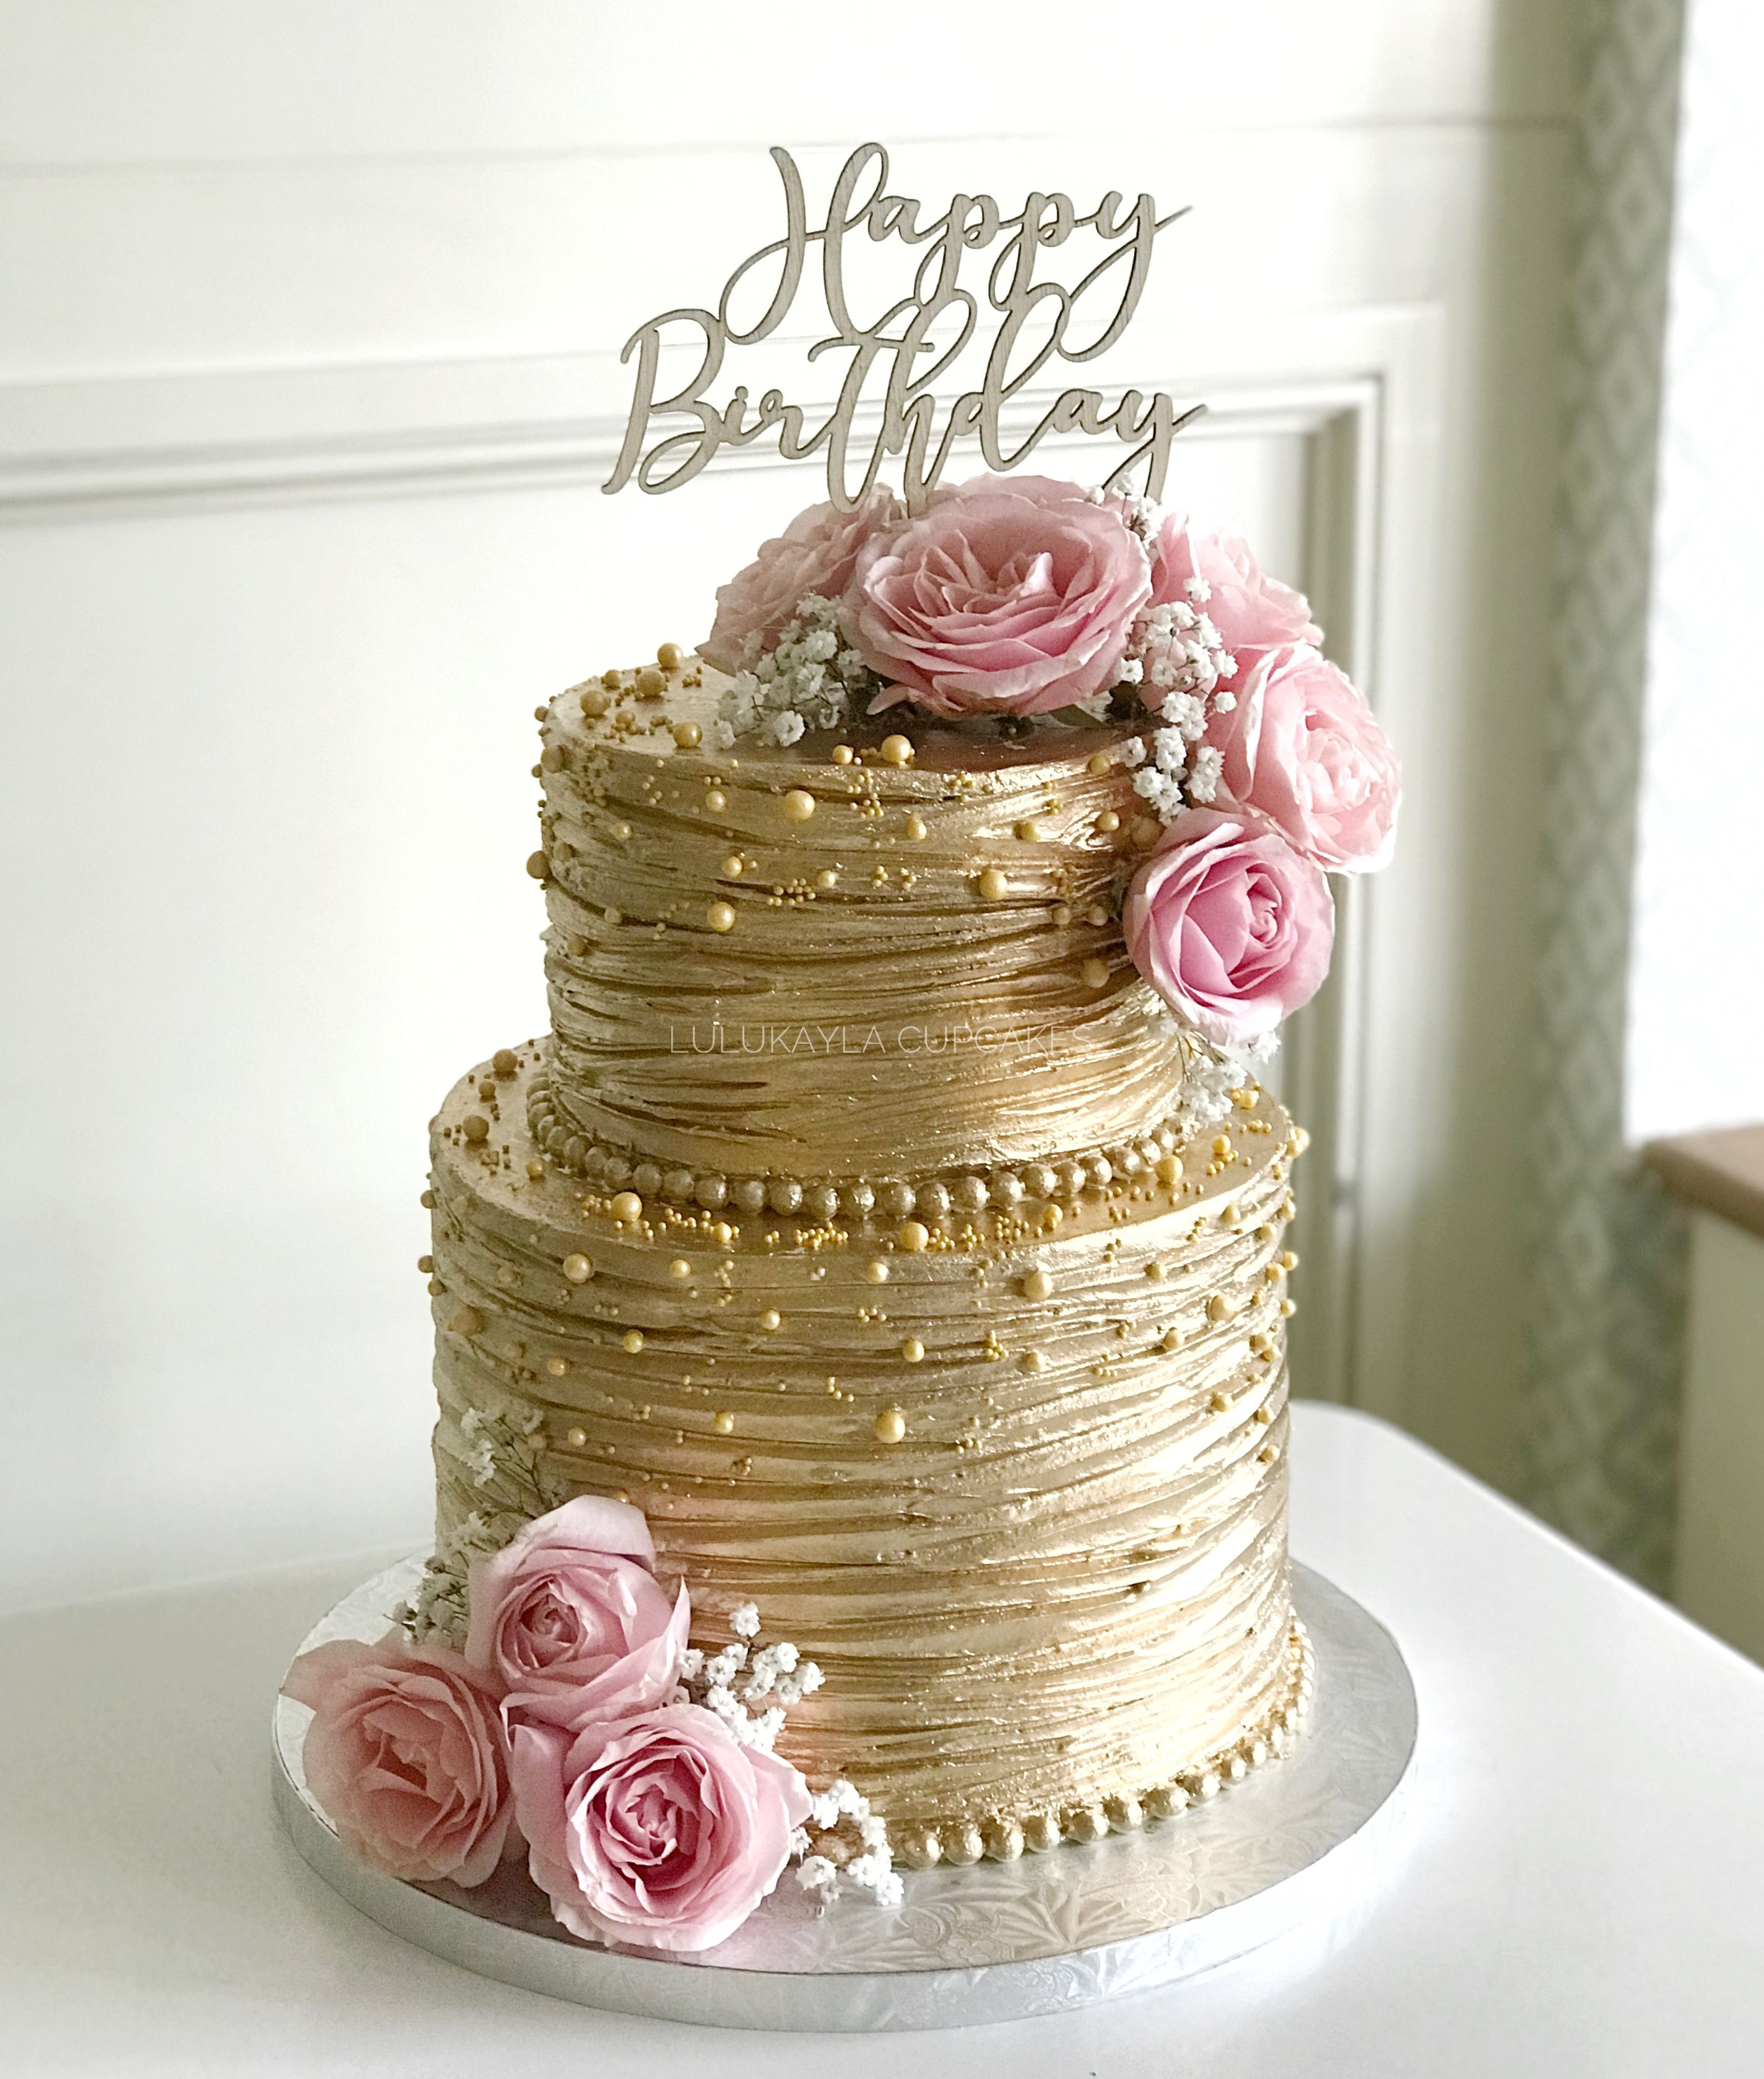 Remarkable Gold Cake With Images Elegant Birthday Cakes Buttercream Cake Funny Birthday Cards Online Alyptdamsfinfo